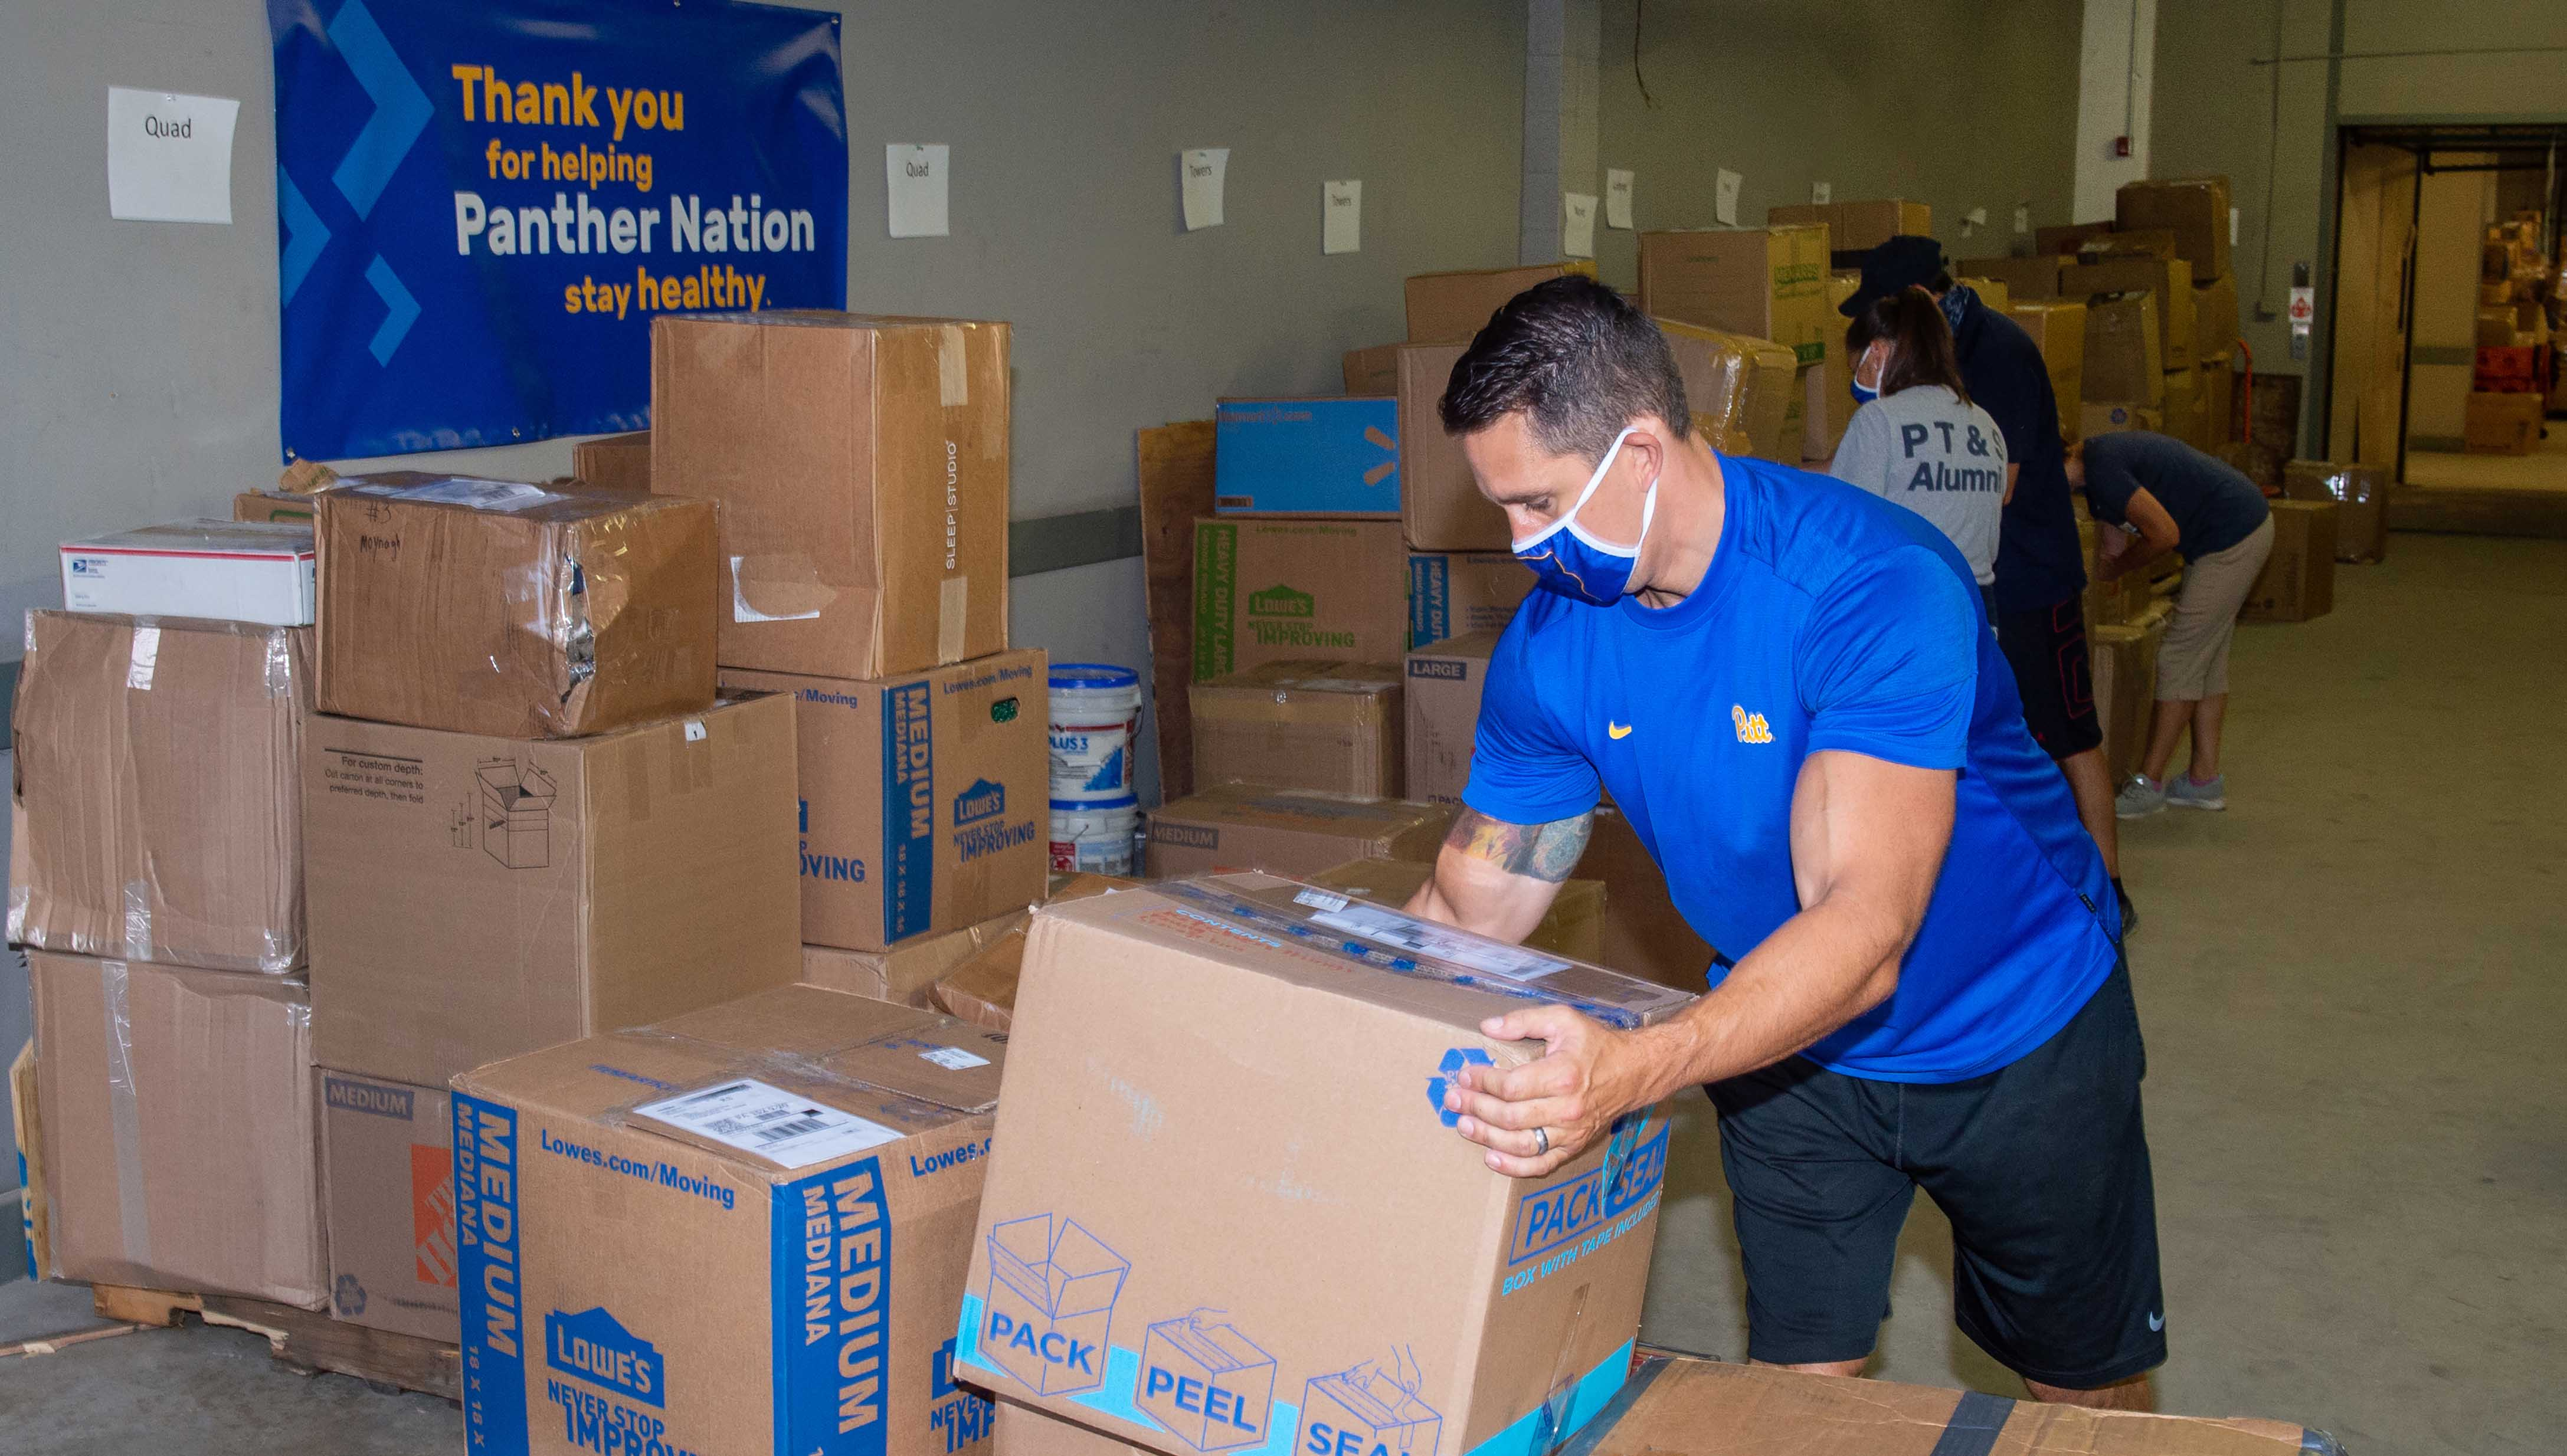 Staff sort through boxes sent to Pitt by students